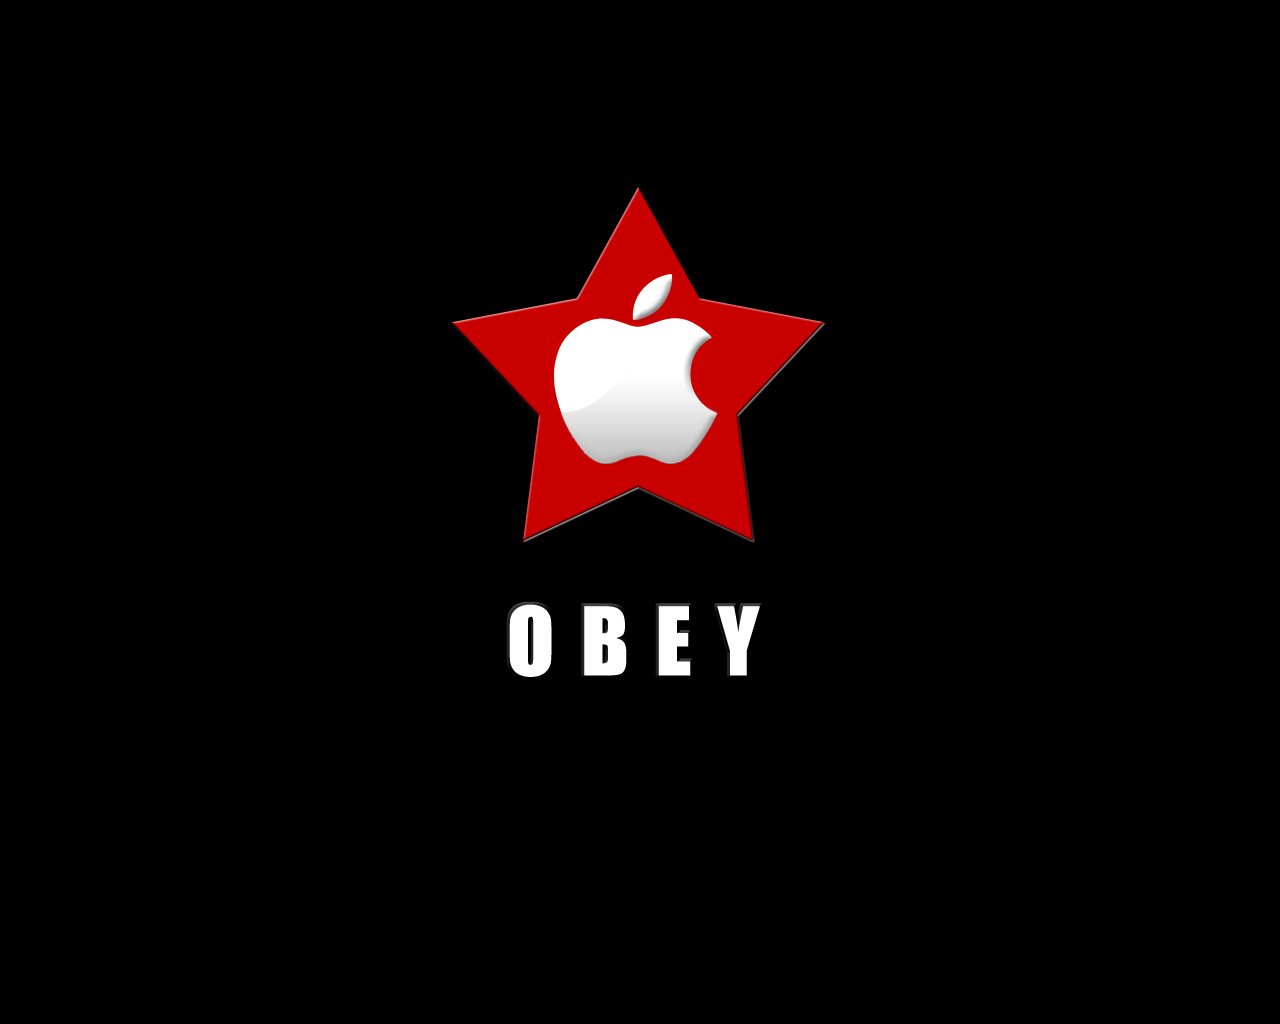 obey Page 4 1280x1024